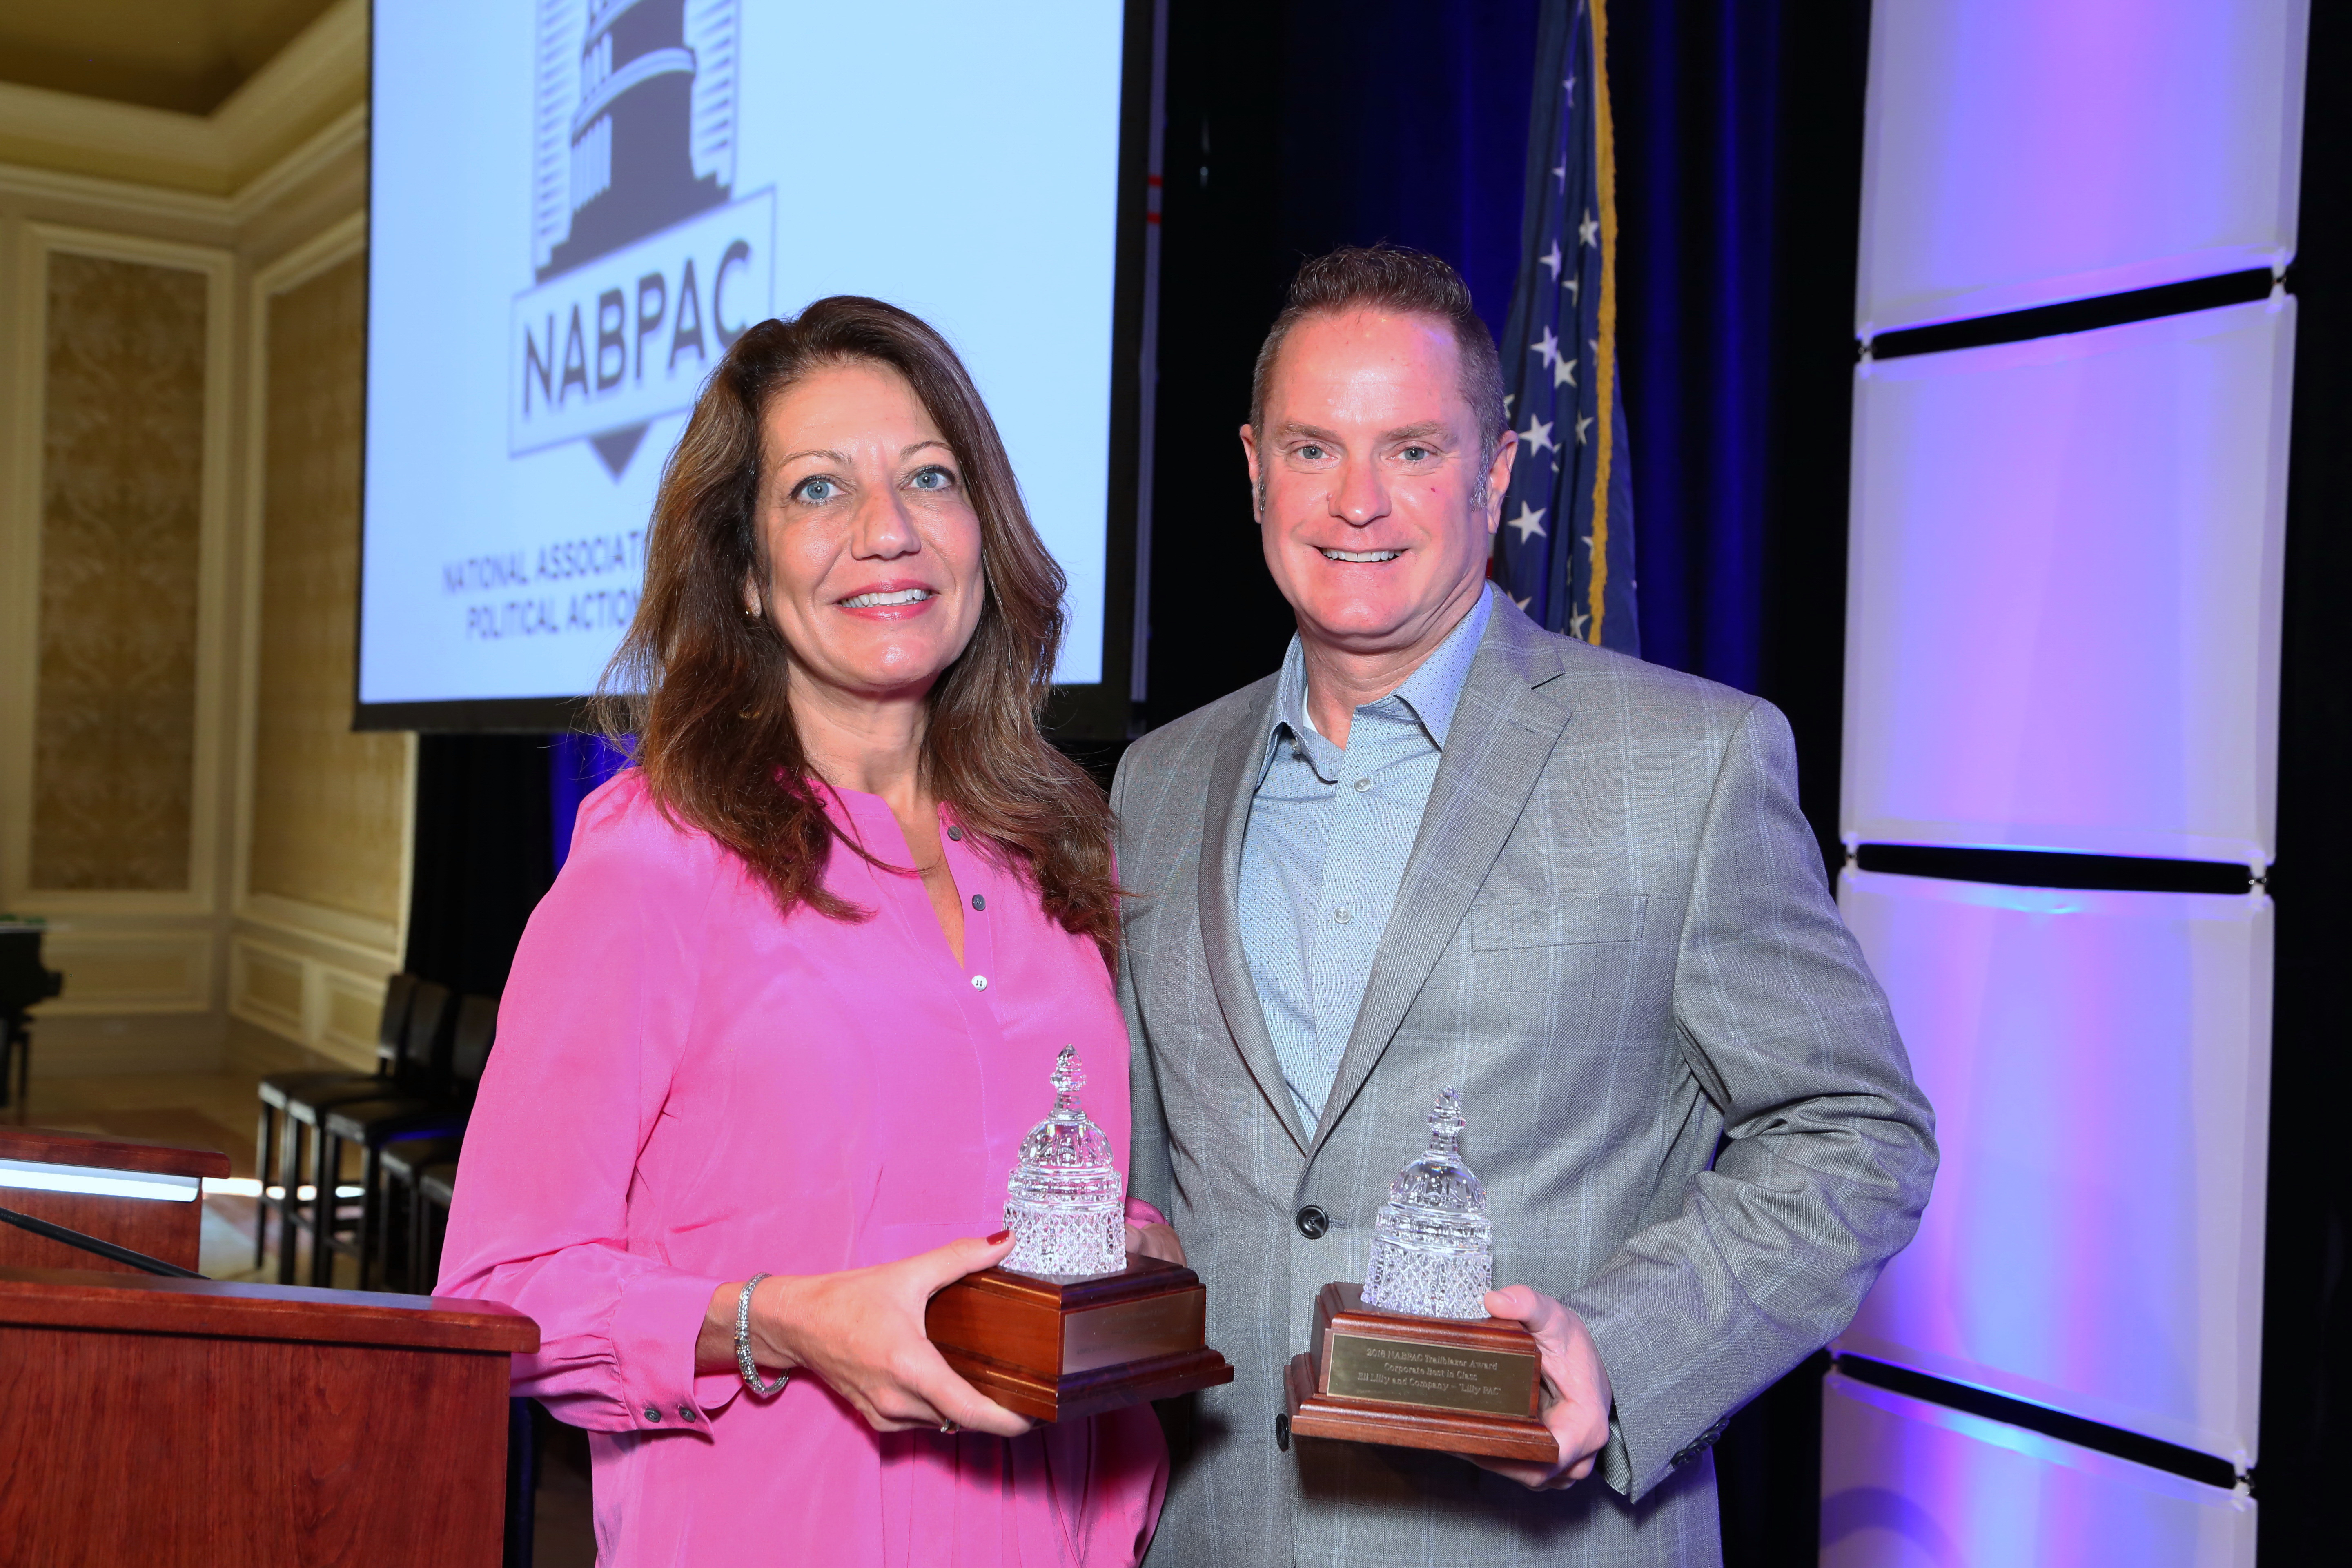 2018 Trailblazer Award Winners; Jeanne Slade (American College of Emergency Physicians) and Ed Sagebiel (Eli Lilly & Co.)